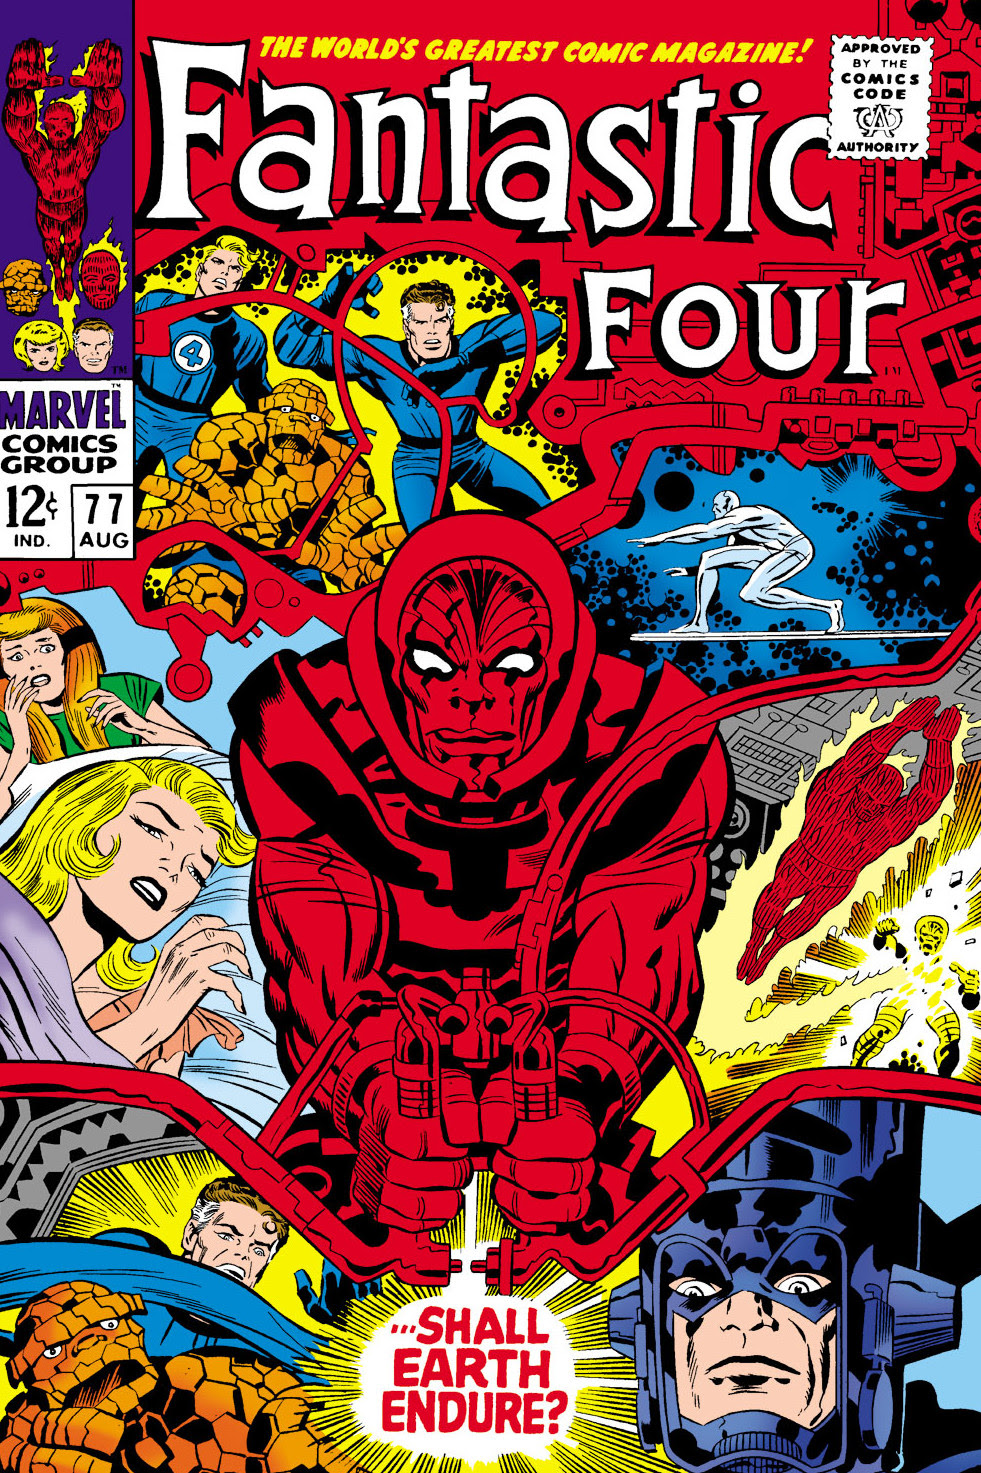 http://vignette4.wikia.nocookie.net/marveldatabase/images/7/70/Fantastic_Four_Vol_1_77.jpg/revision/latest?cb=20070602235109